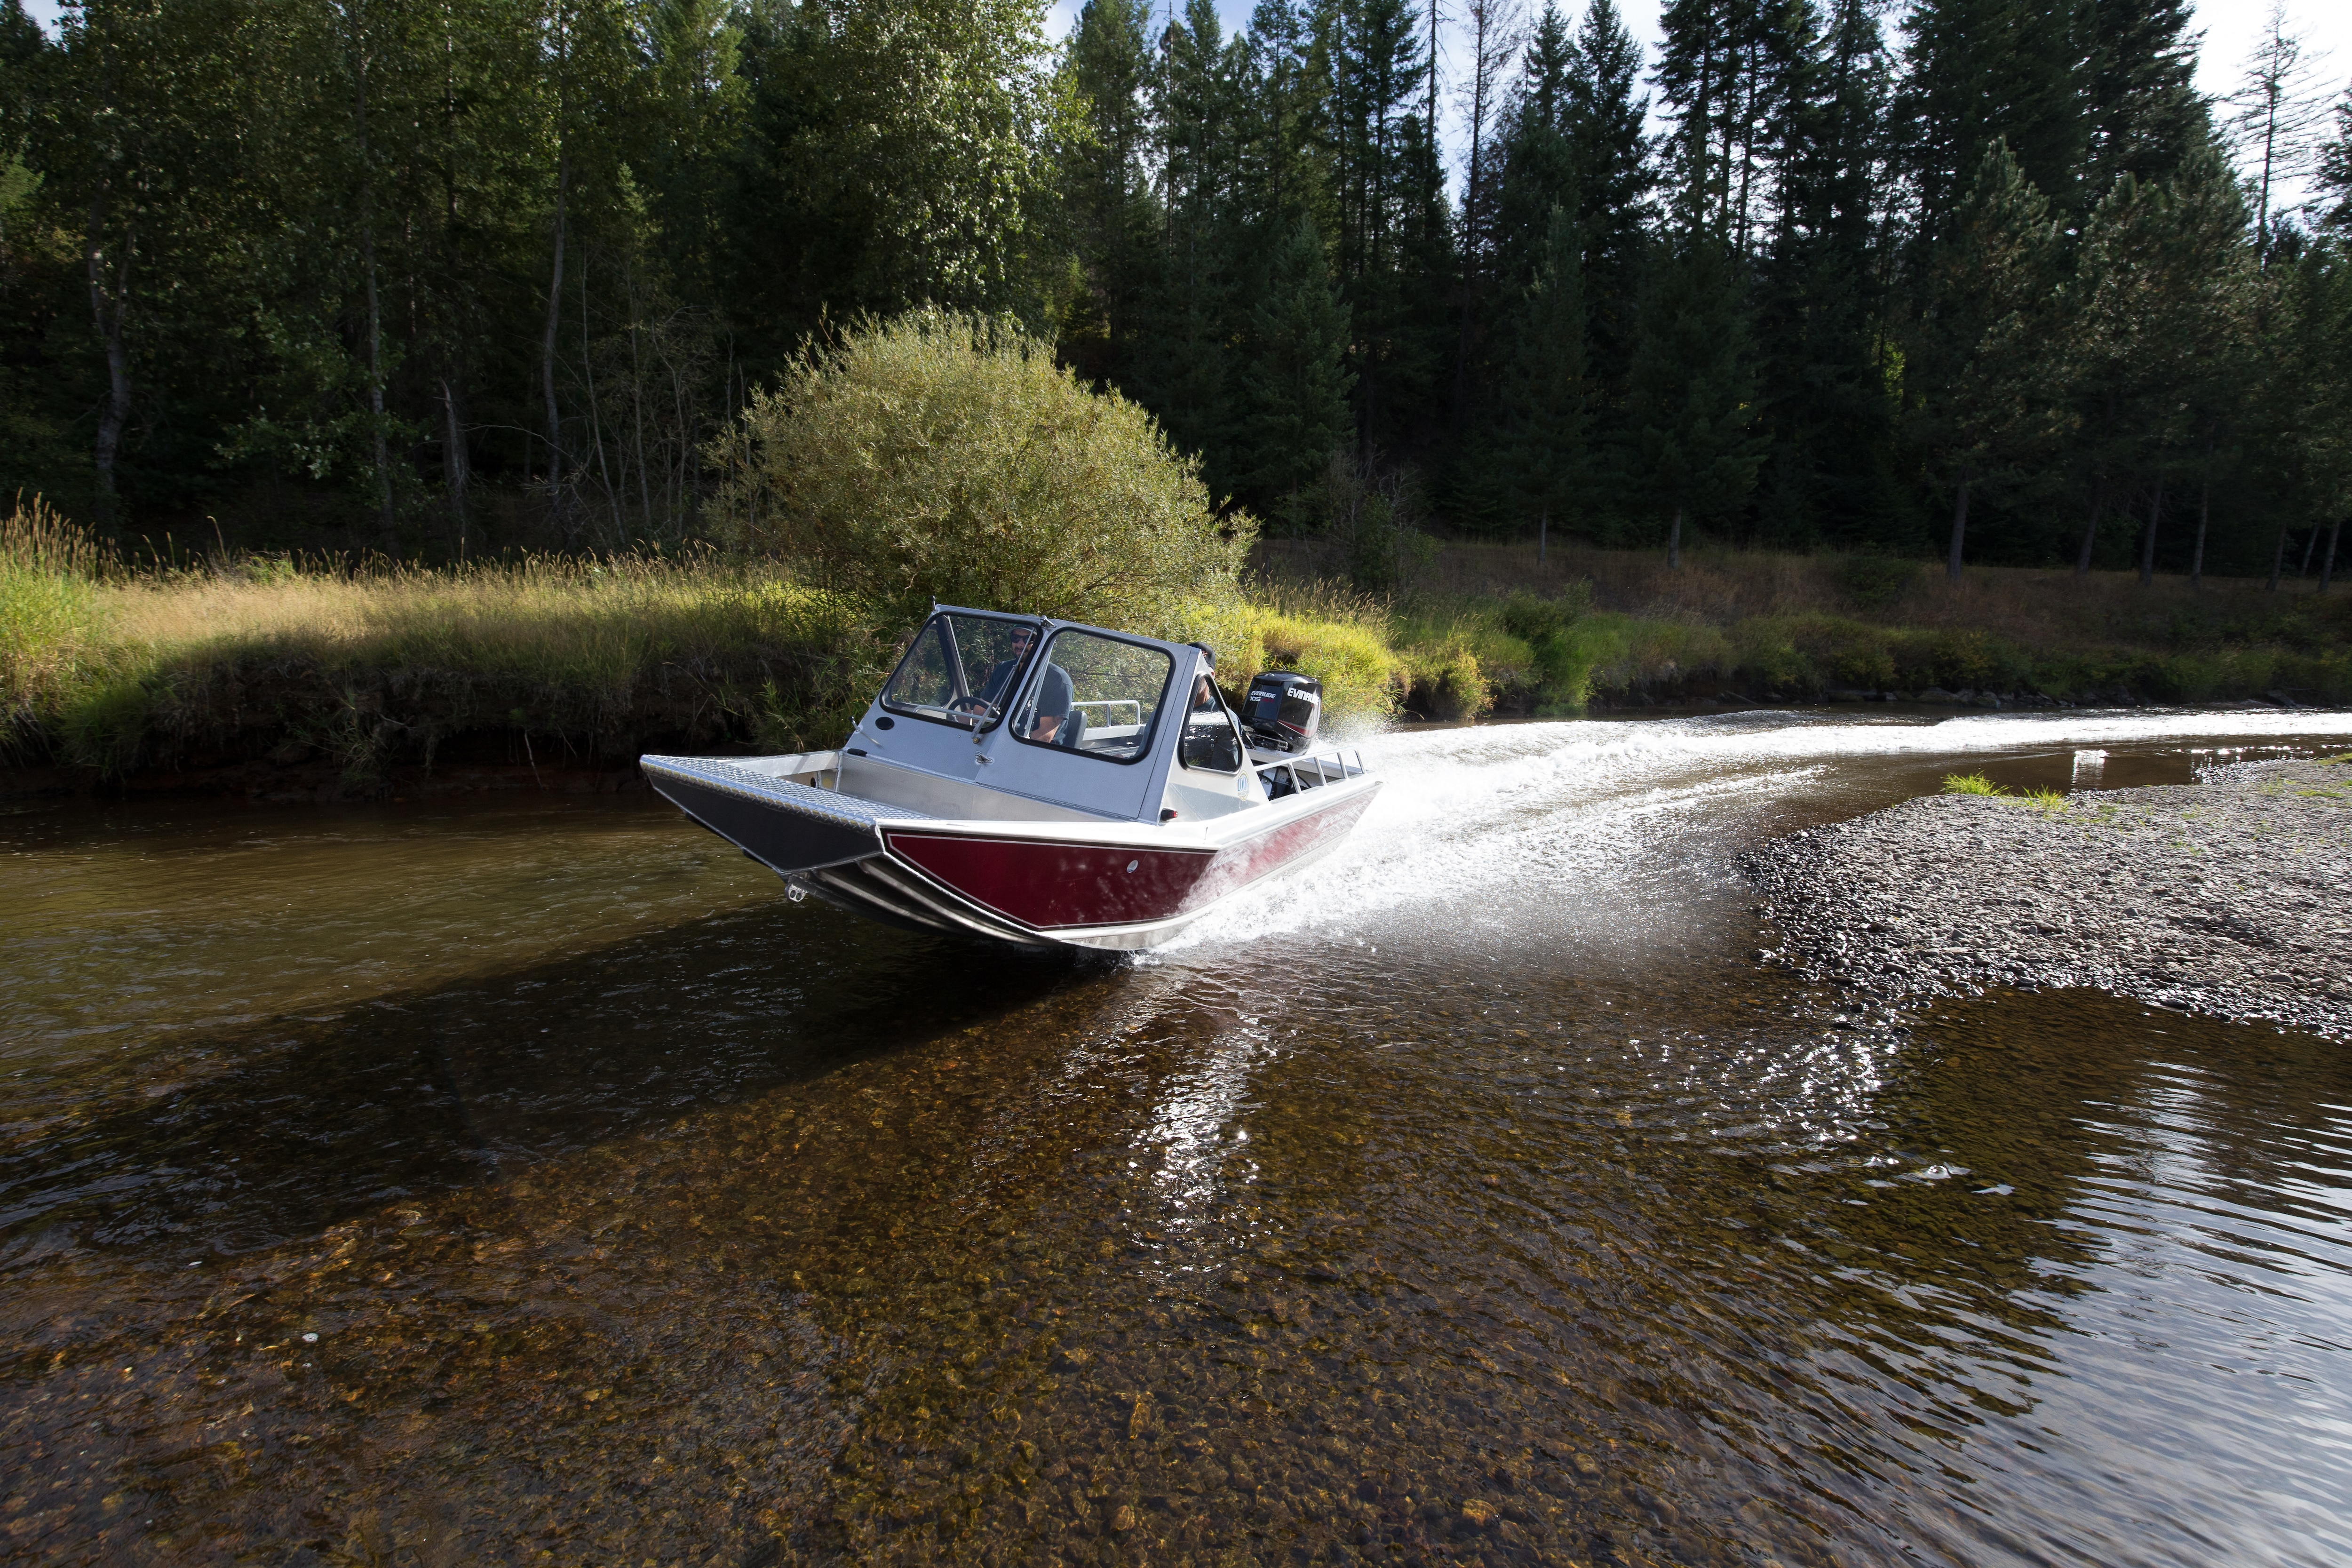 Man driving small boat across shallow water